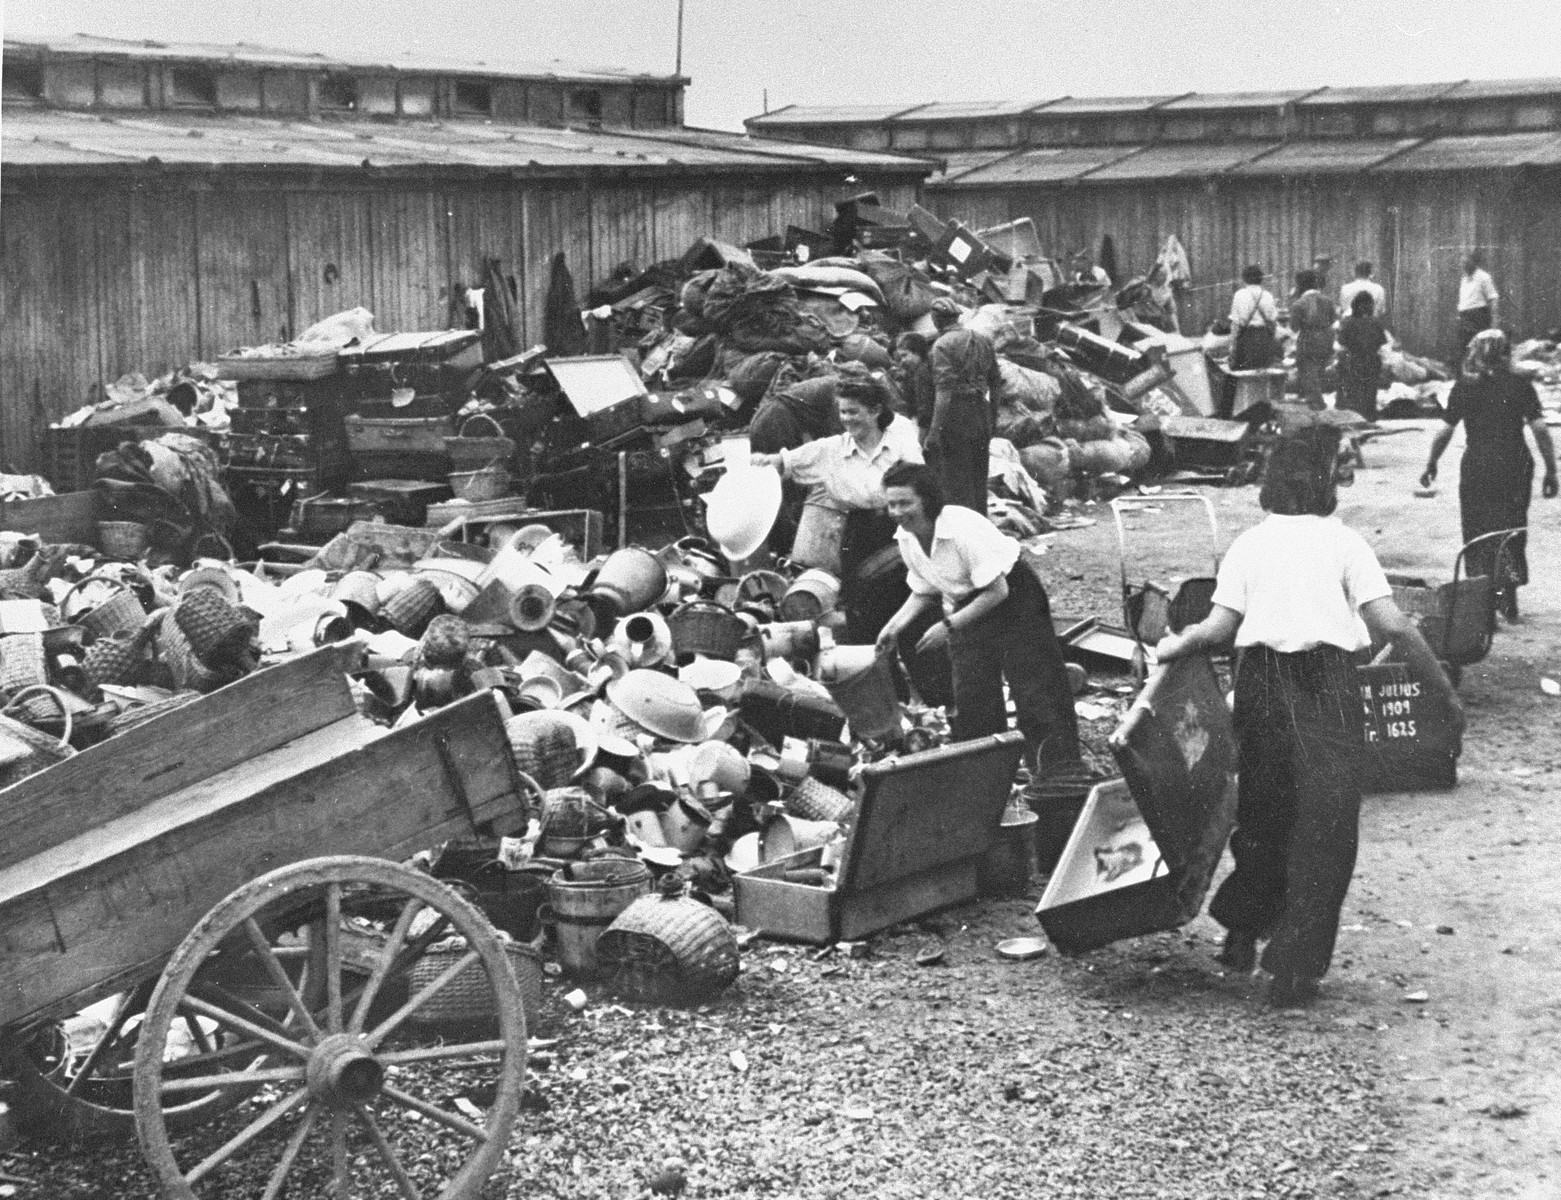 """Prisoners in the Aufräumungskommando (order commandos) unload and sort the confiscated property of a transport of Jews from Subcarpathian Rus at a warehouse in Auschwitz-Birkenau.  The camp prisoners came to refer to the looted property as """"Kanada,"""" associating it with the riches symbolized by Kanada.  The members of this commando were almost exclusively Jews.  """"Kanada"""" storage facilities occupied several dozen barracks and other buildings around the camp.  The looted property was funneled from Auschwitz through an extensive distribution network that served many individuals and various economic branches of the Third Reich."""